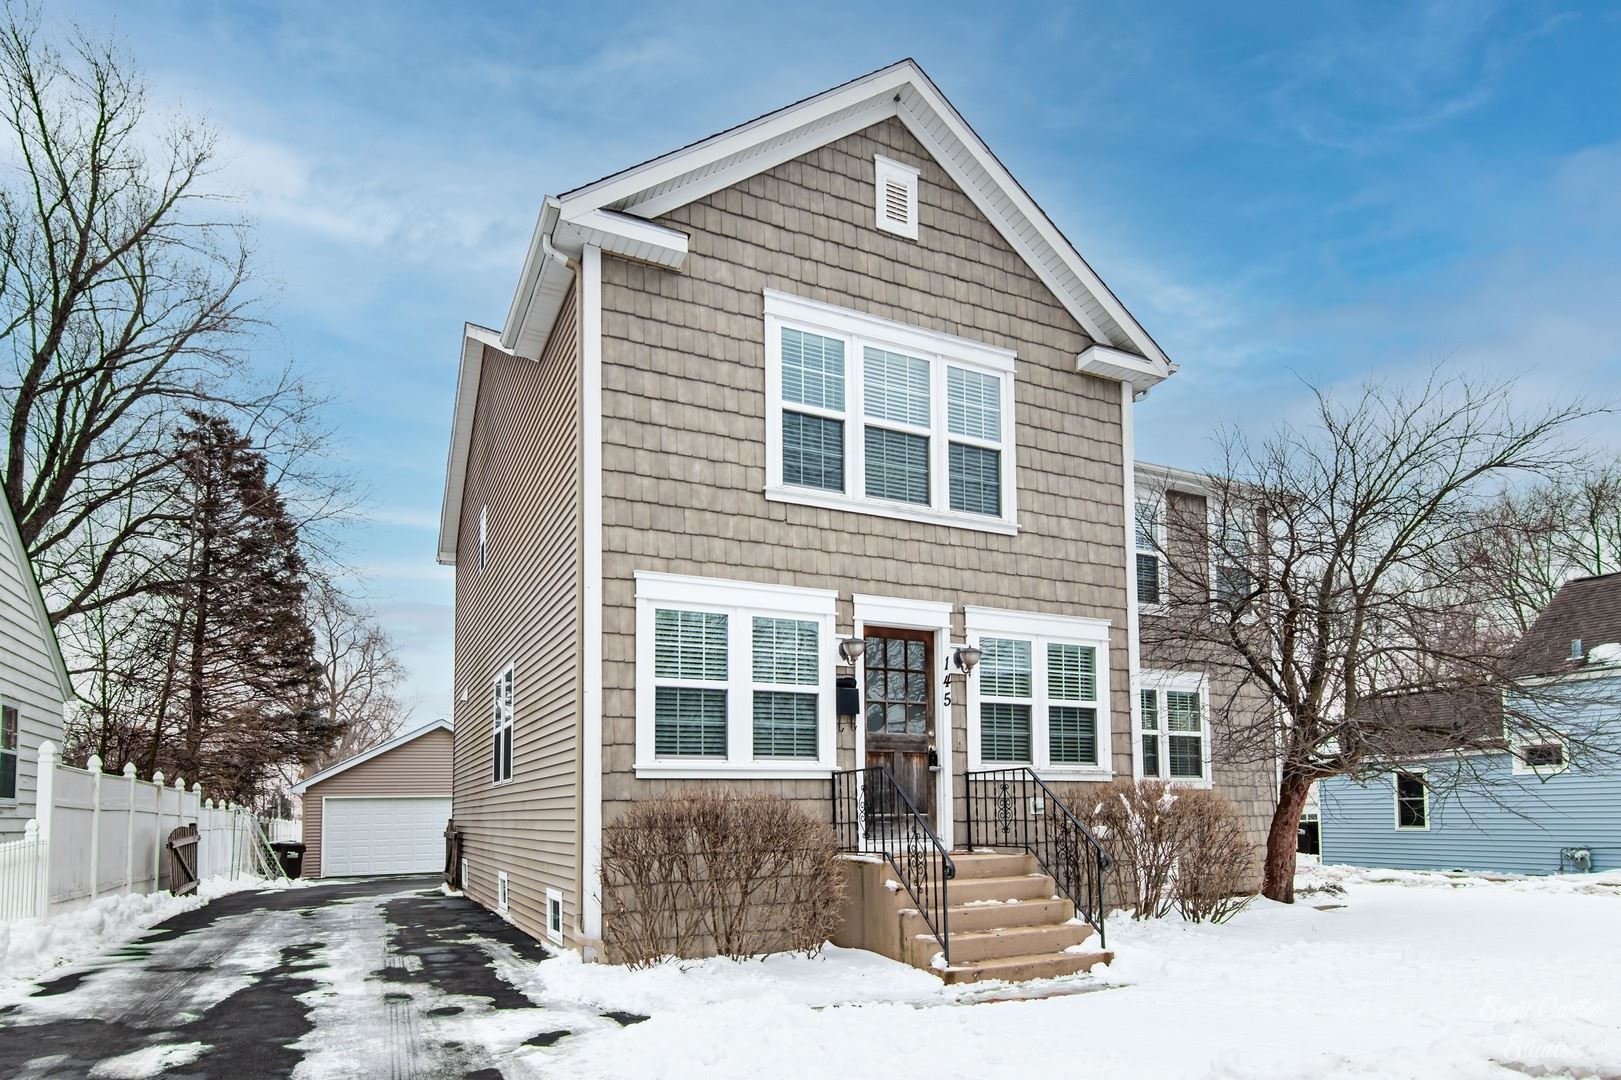 145 S McHENRY Avenue, Crystal Lake, IL 60014 - #: 10971857